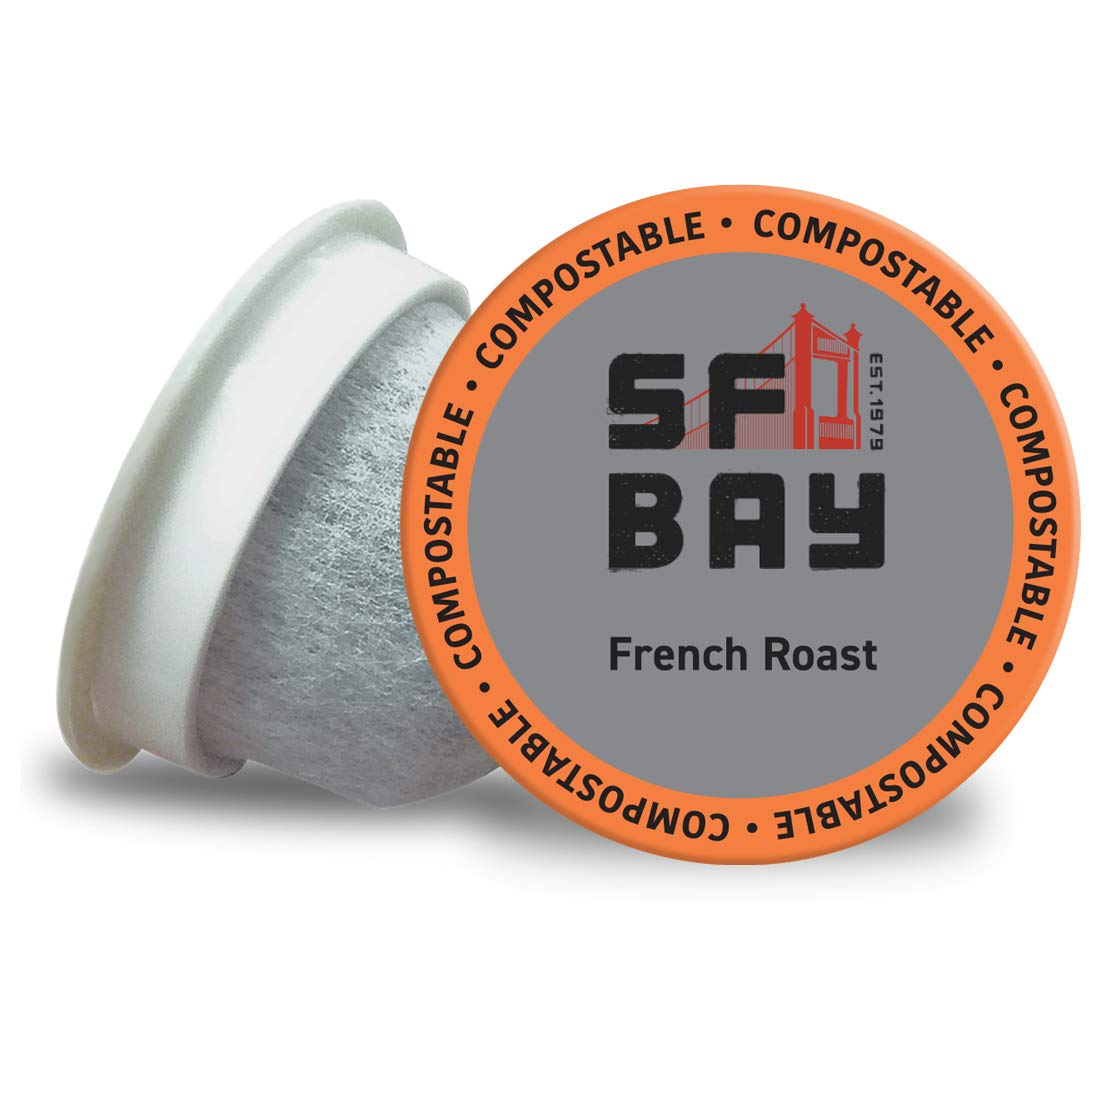 SAN FRANCISCO BAY Coffee French Roast/Dark Roast 80 Count Compostable Coffee Pods, K Cup Compatible Including Keurig 2.0 (Packaging May Vary)